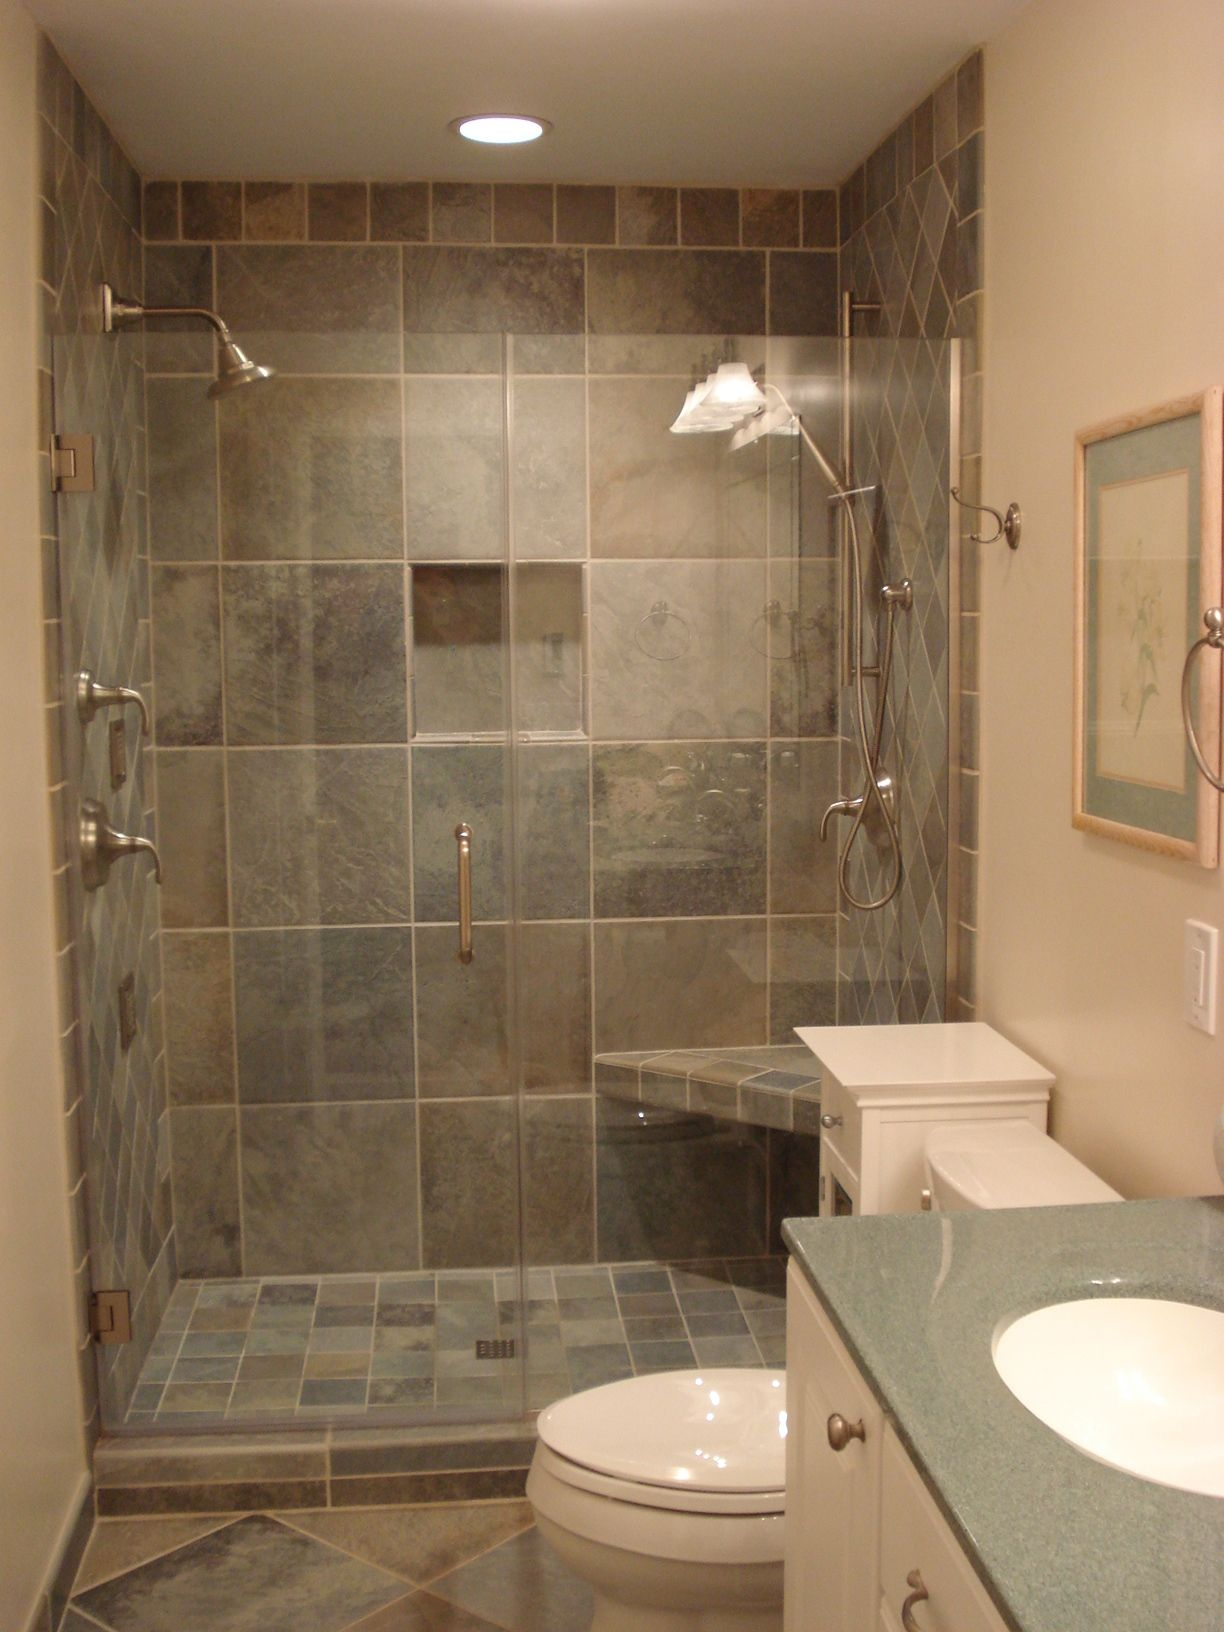 Besf Of Ideas Remodel Bathroom Tub And How To Remodel My Bathroom